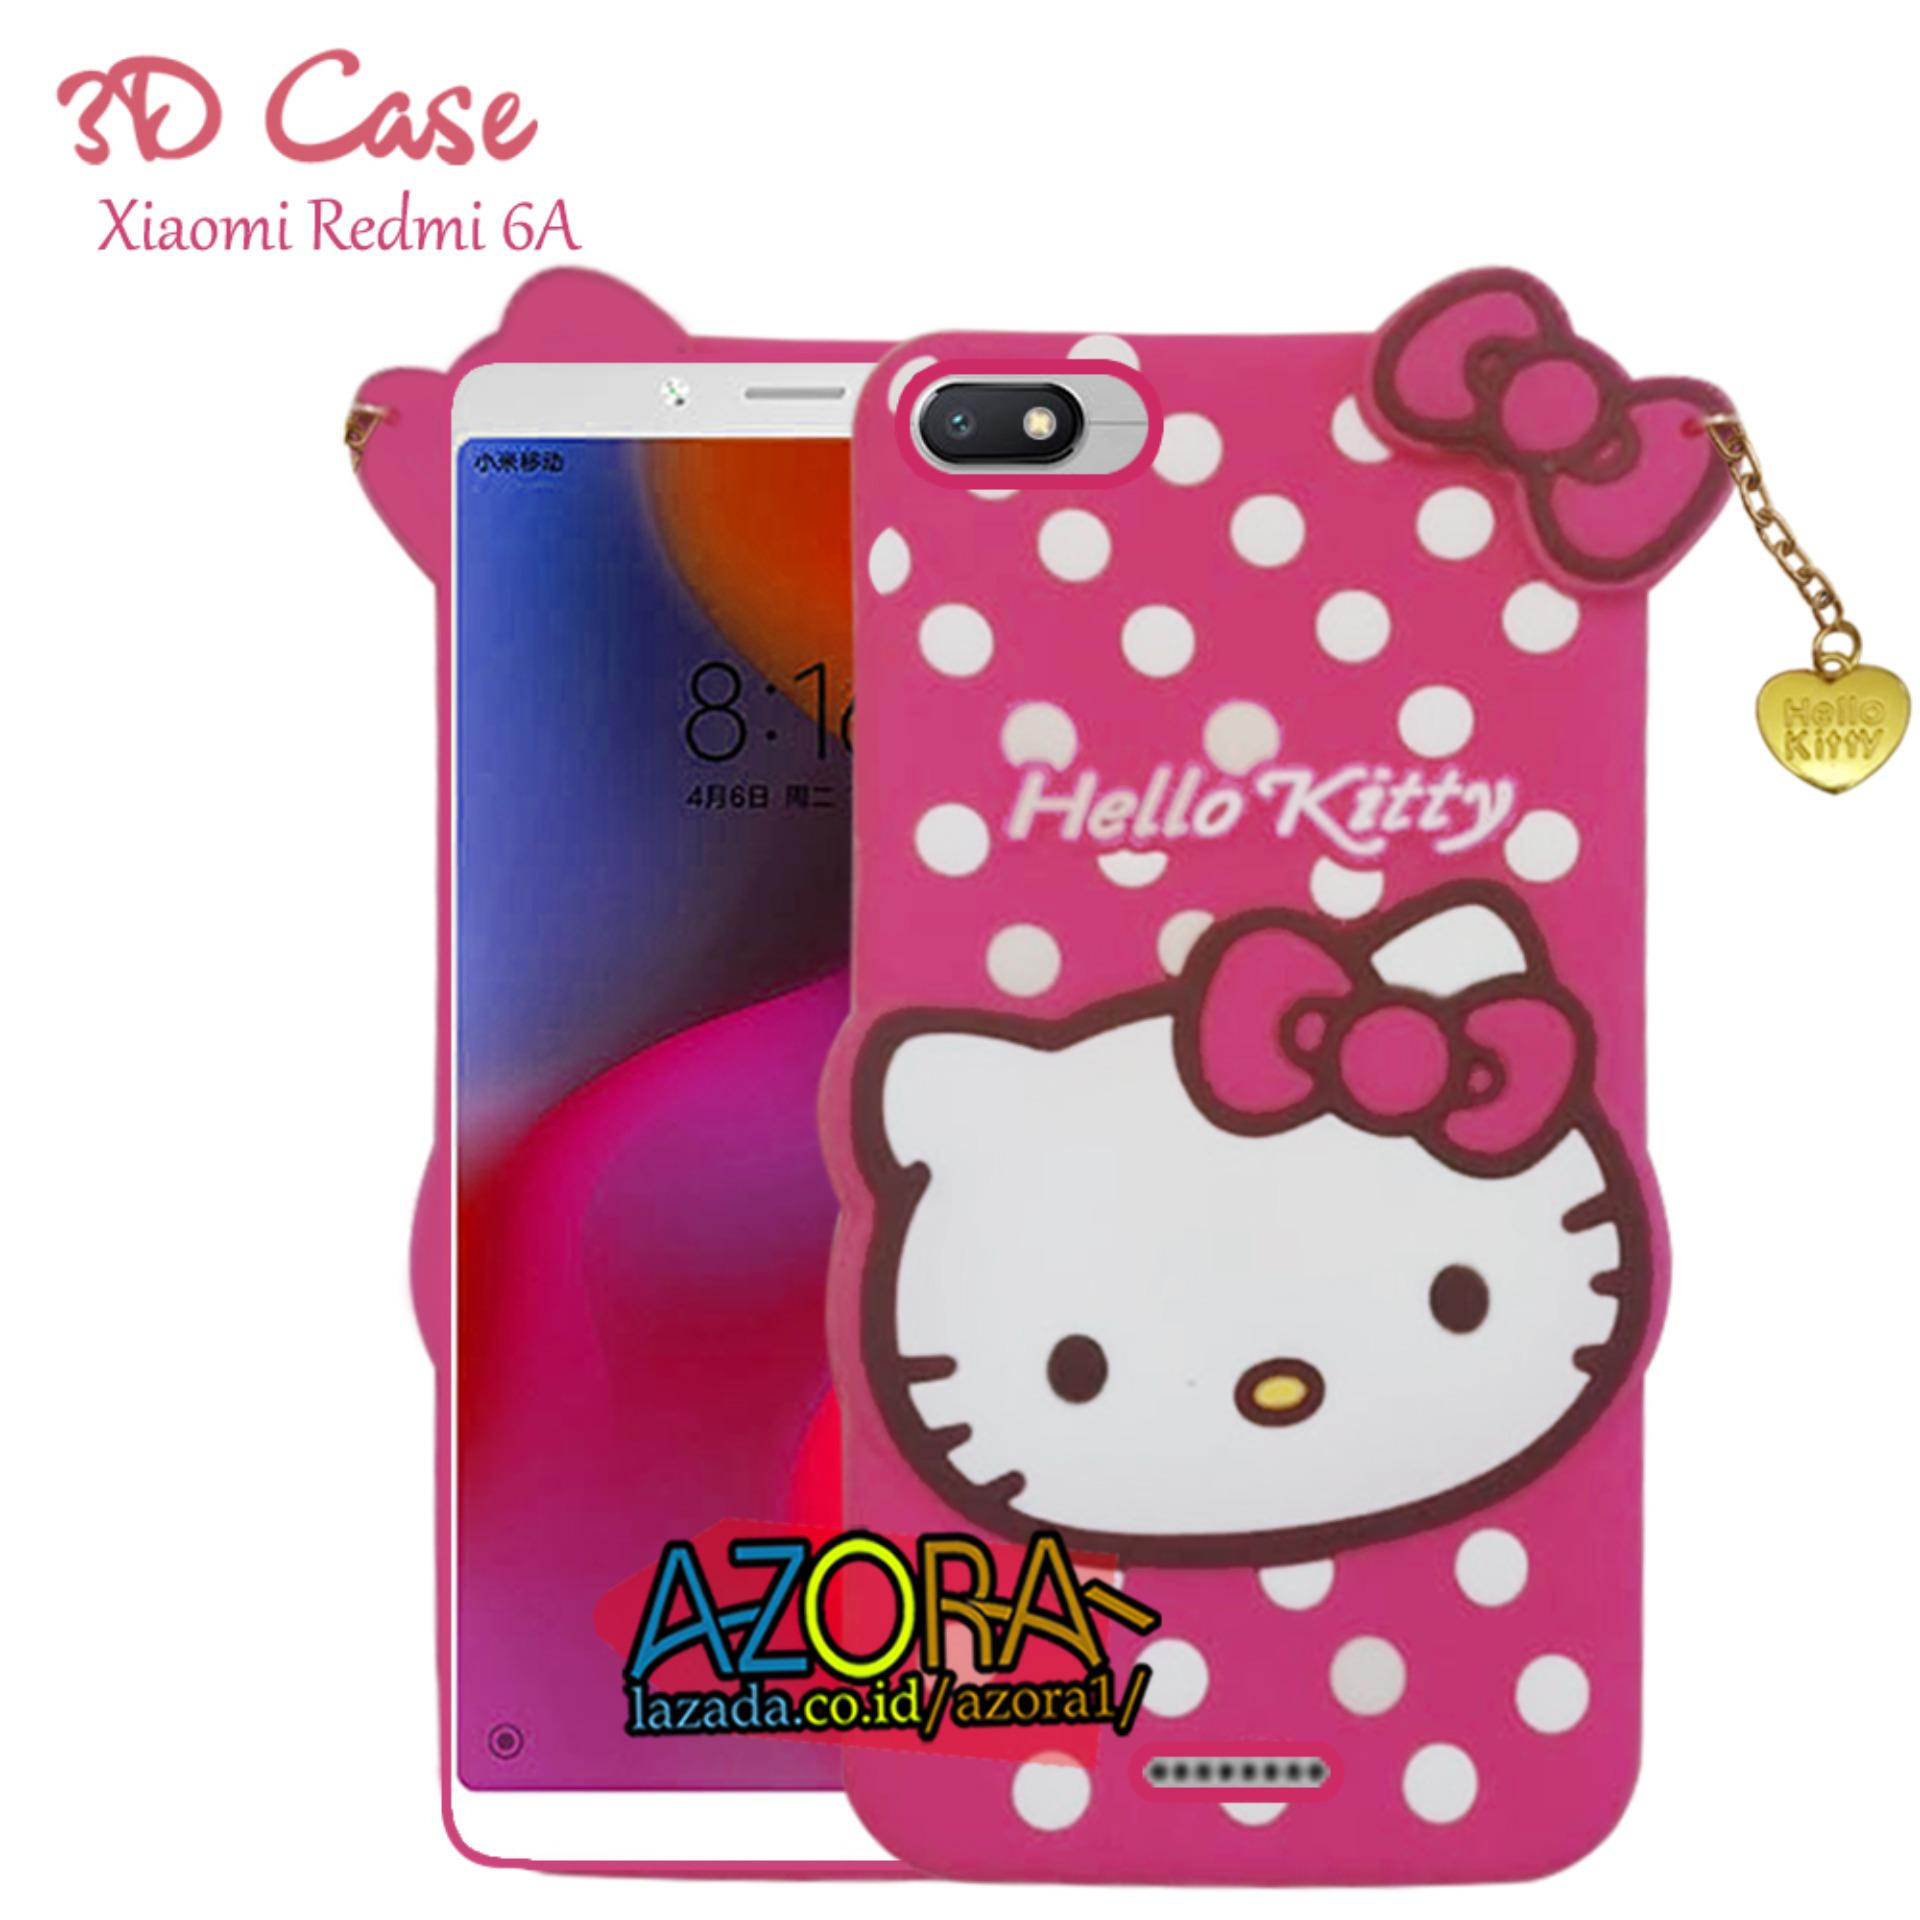 3D Case Xiaomi Redmi 6A Softcase 4D Karakter Boneka Hello Kitty Poolkadot Doraemon Lucu Character Cartoon